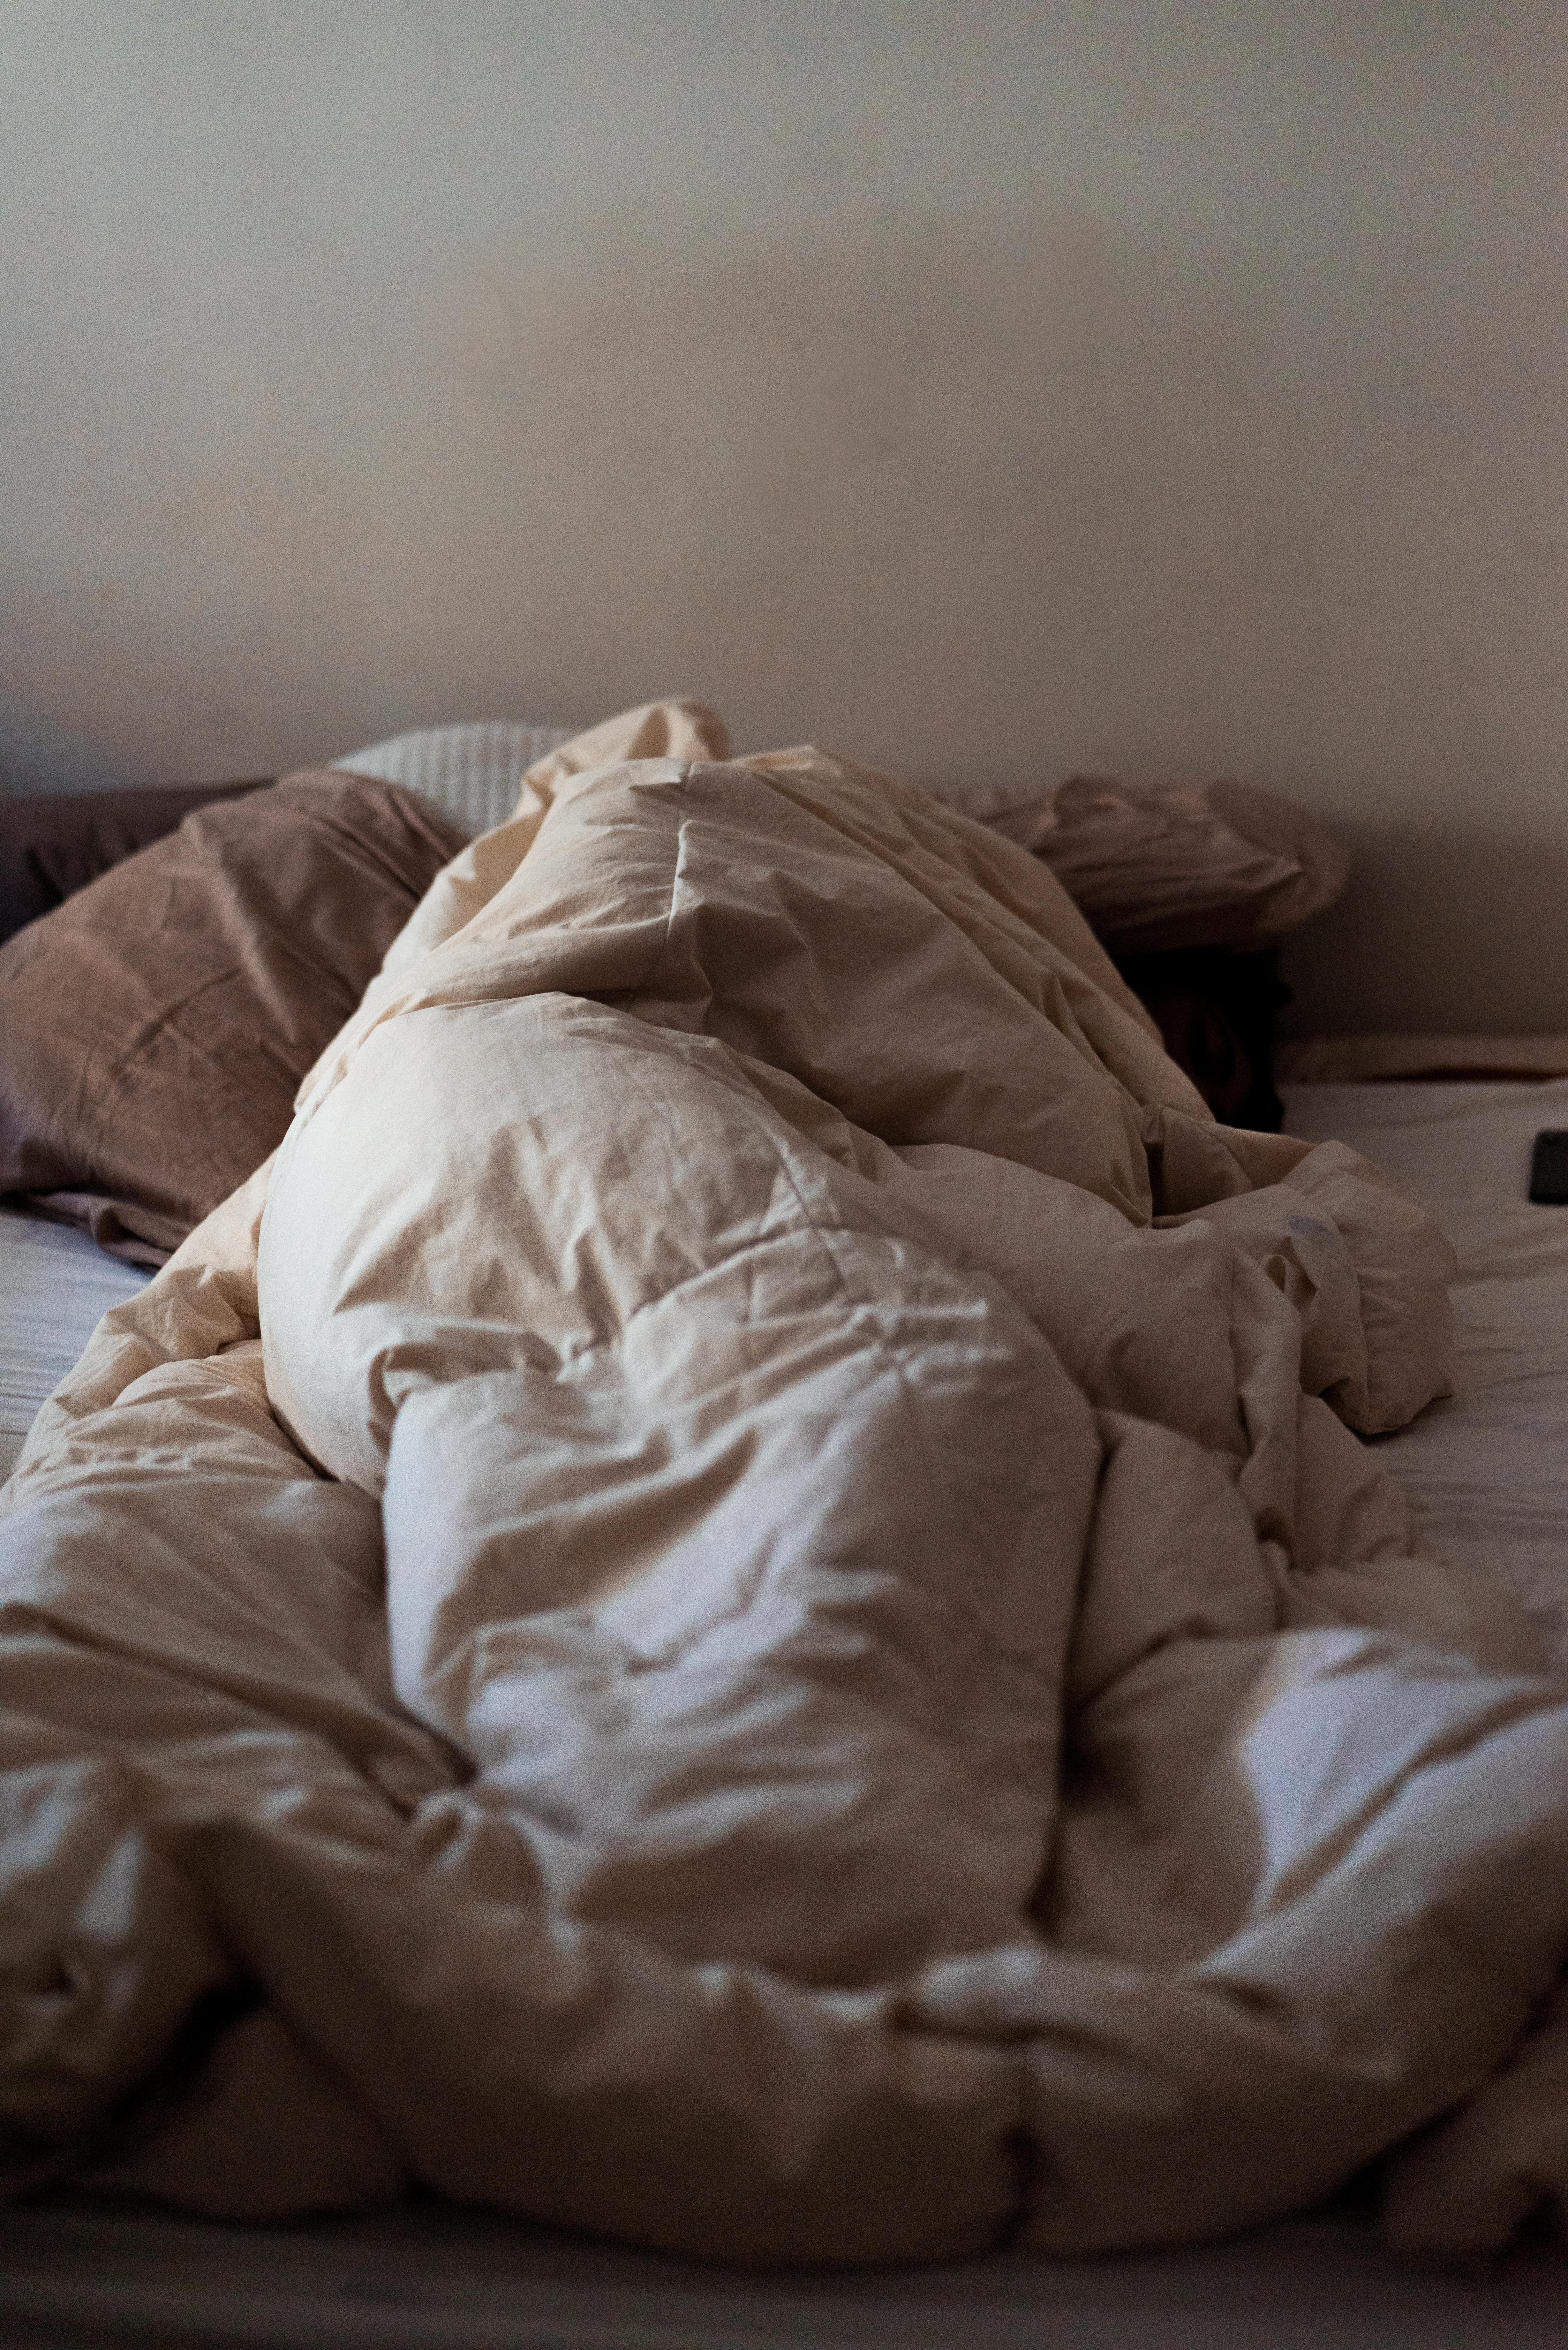 a person sleeping. effects of excessive working